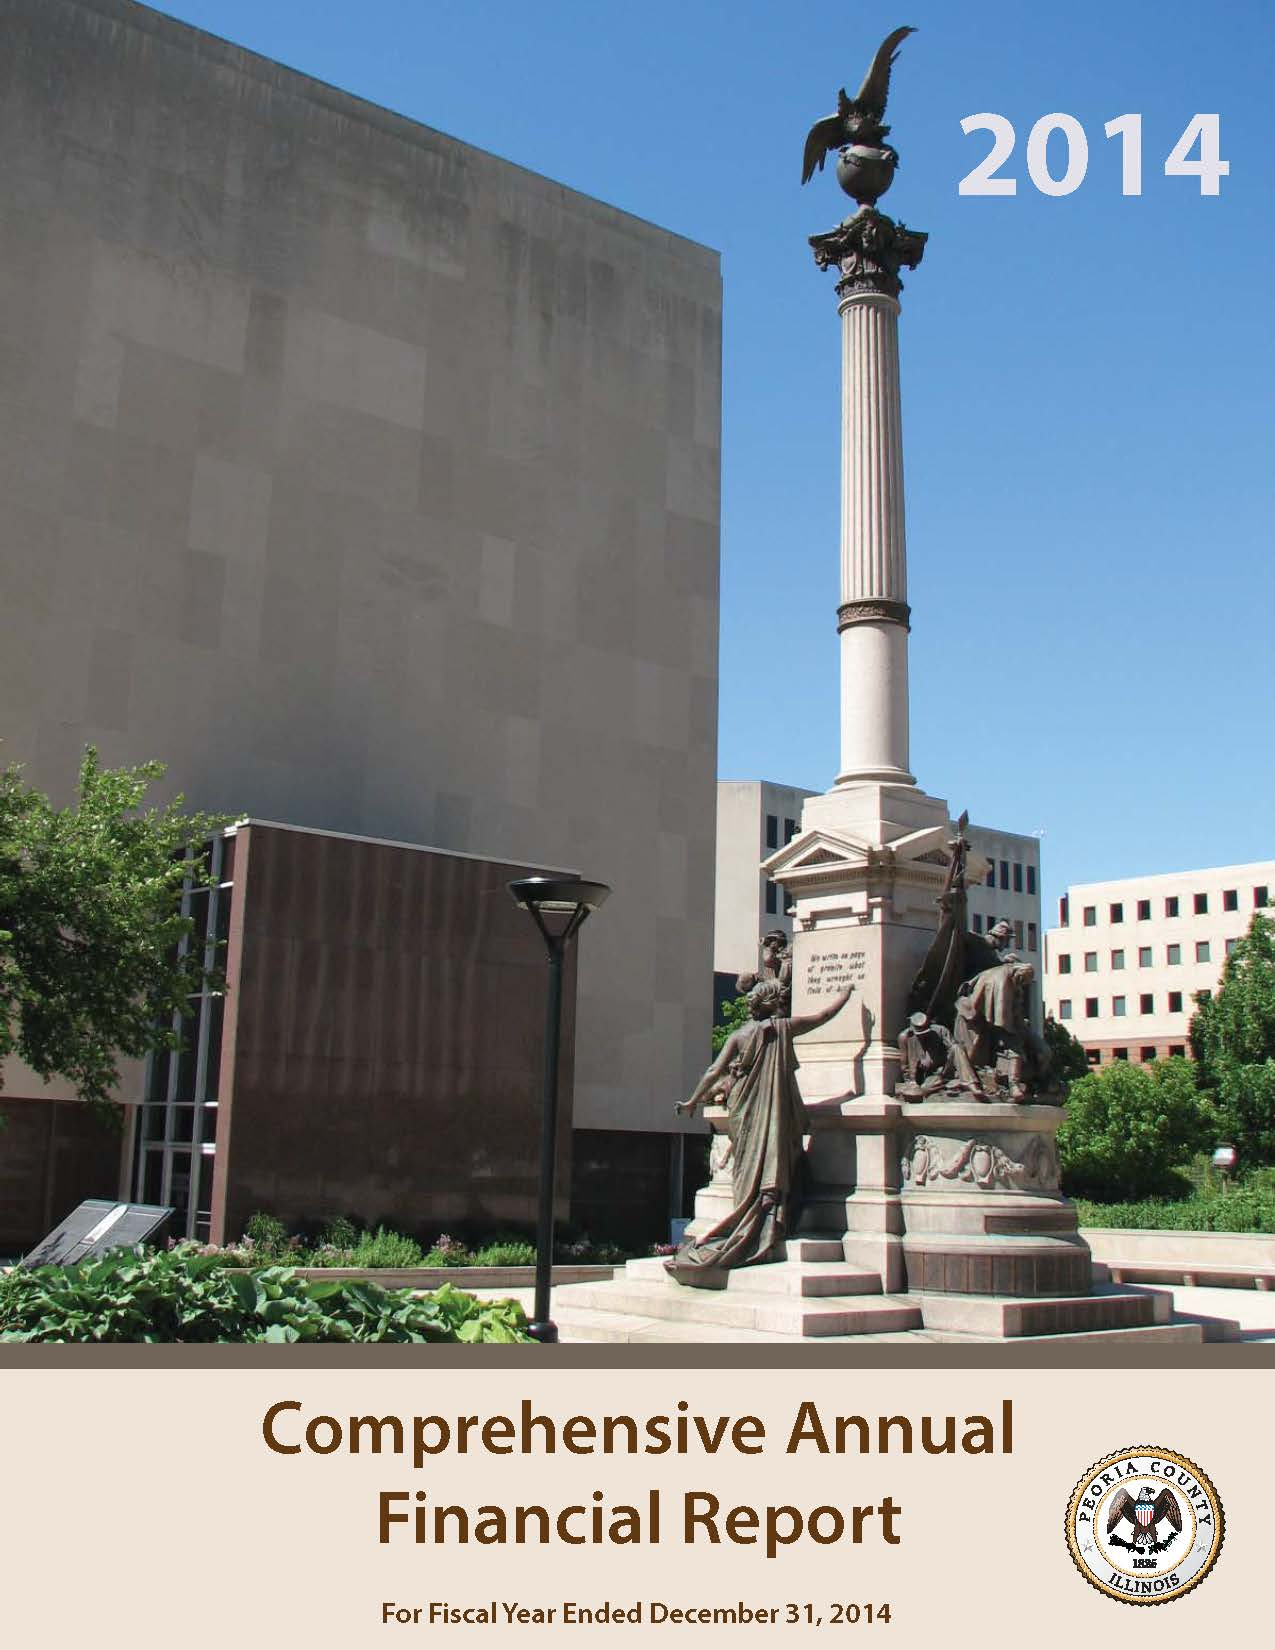 Comprehensive Annual Financial Report Cover 2014